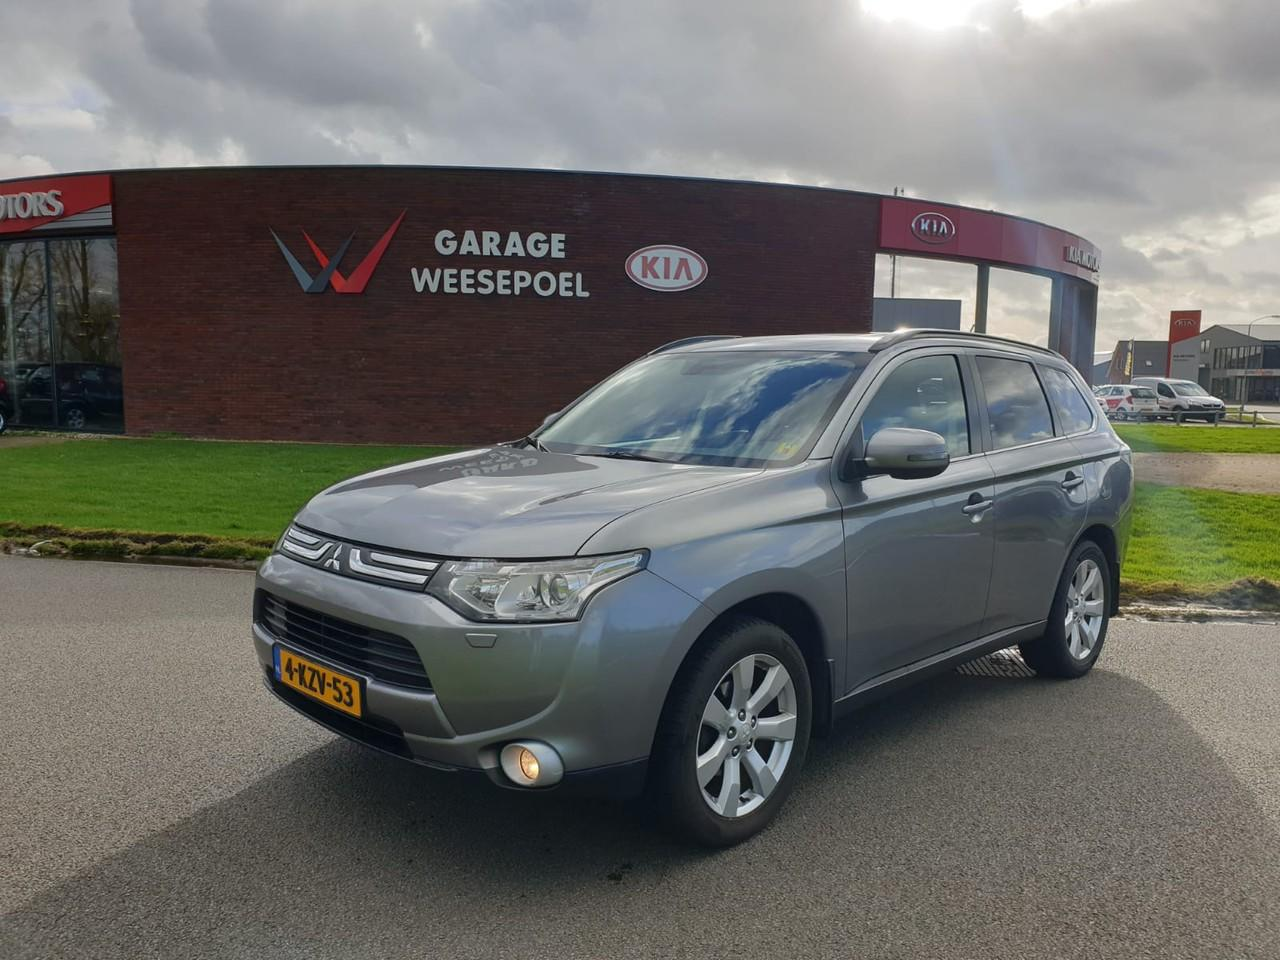 Mitsubishi Outlander 2.2 di-d instyle 4wd 150pk automaat 7 zitter